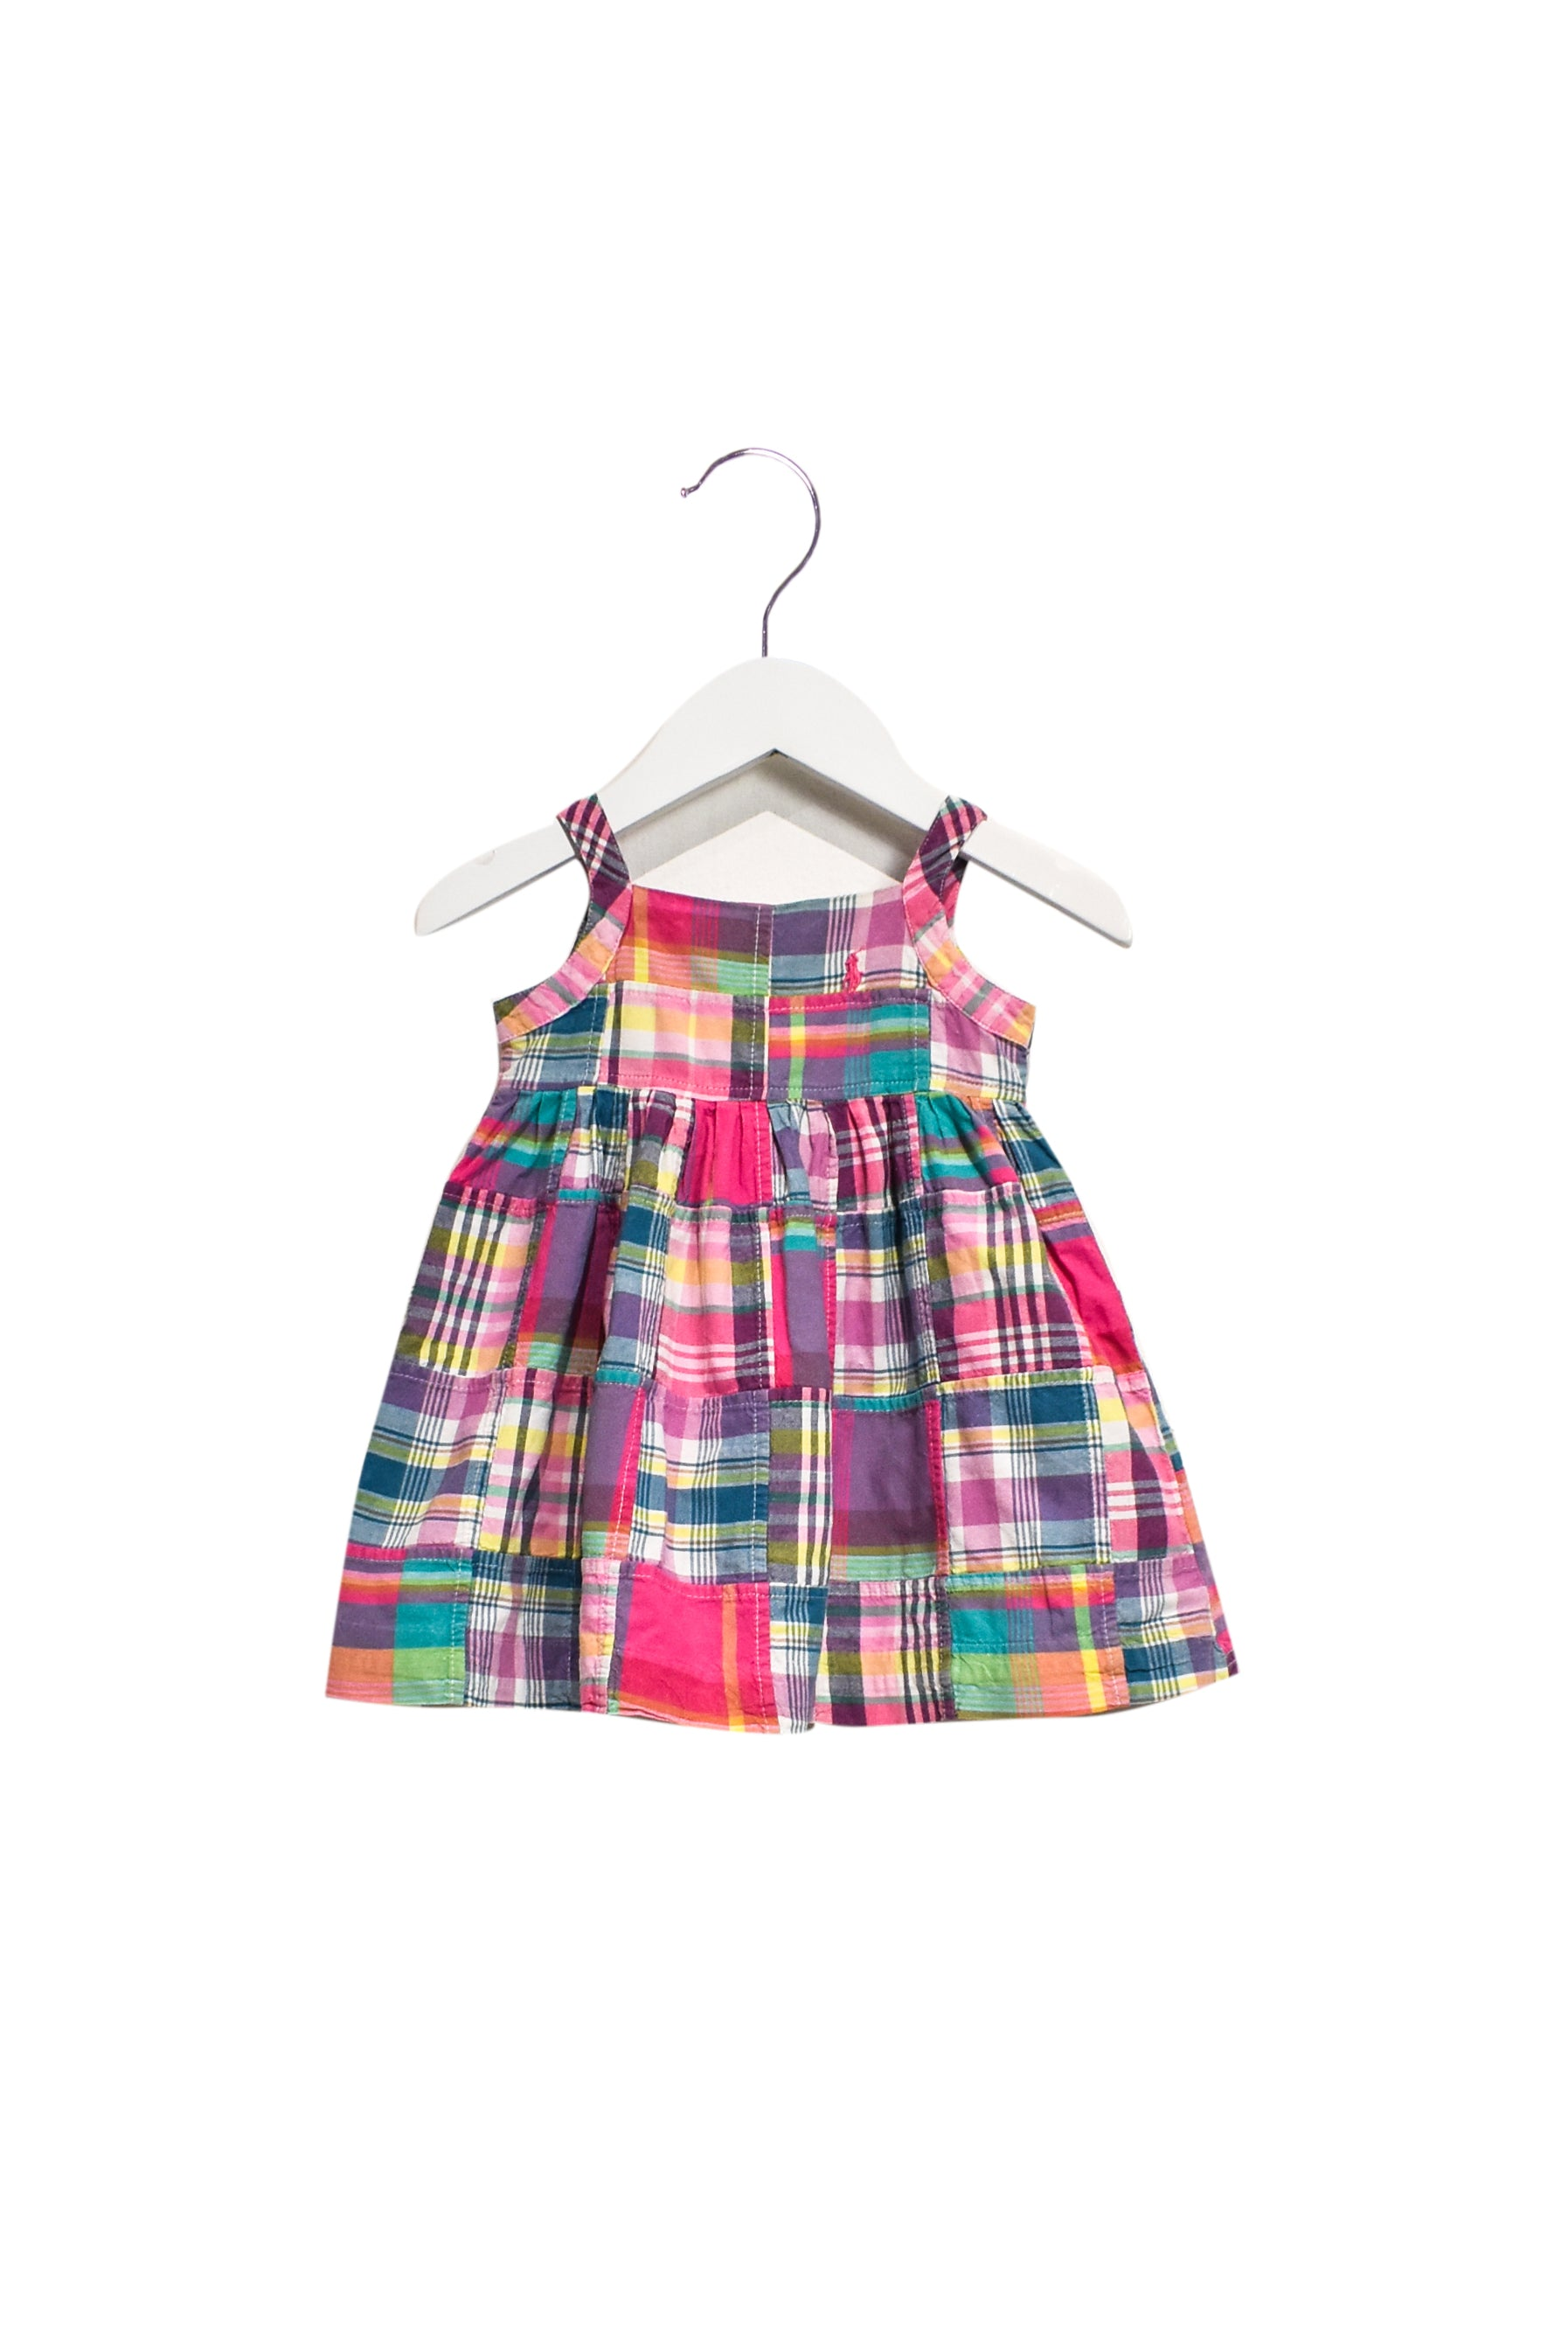 10021662 Ralph Lauren Baby~Dress and Bloomers 6M at Retykle